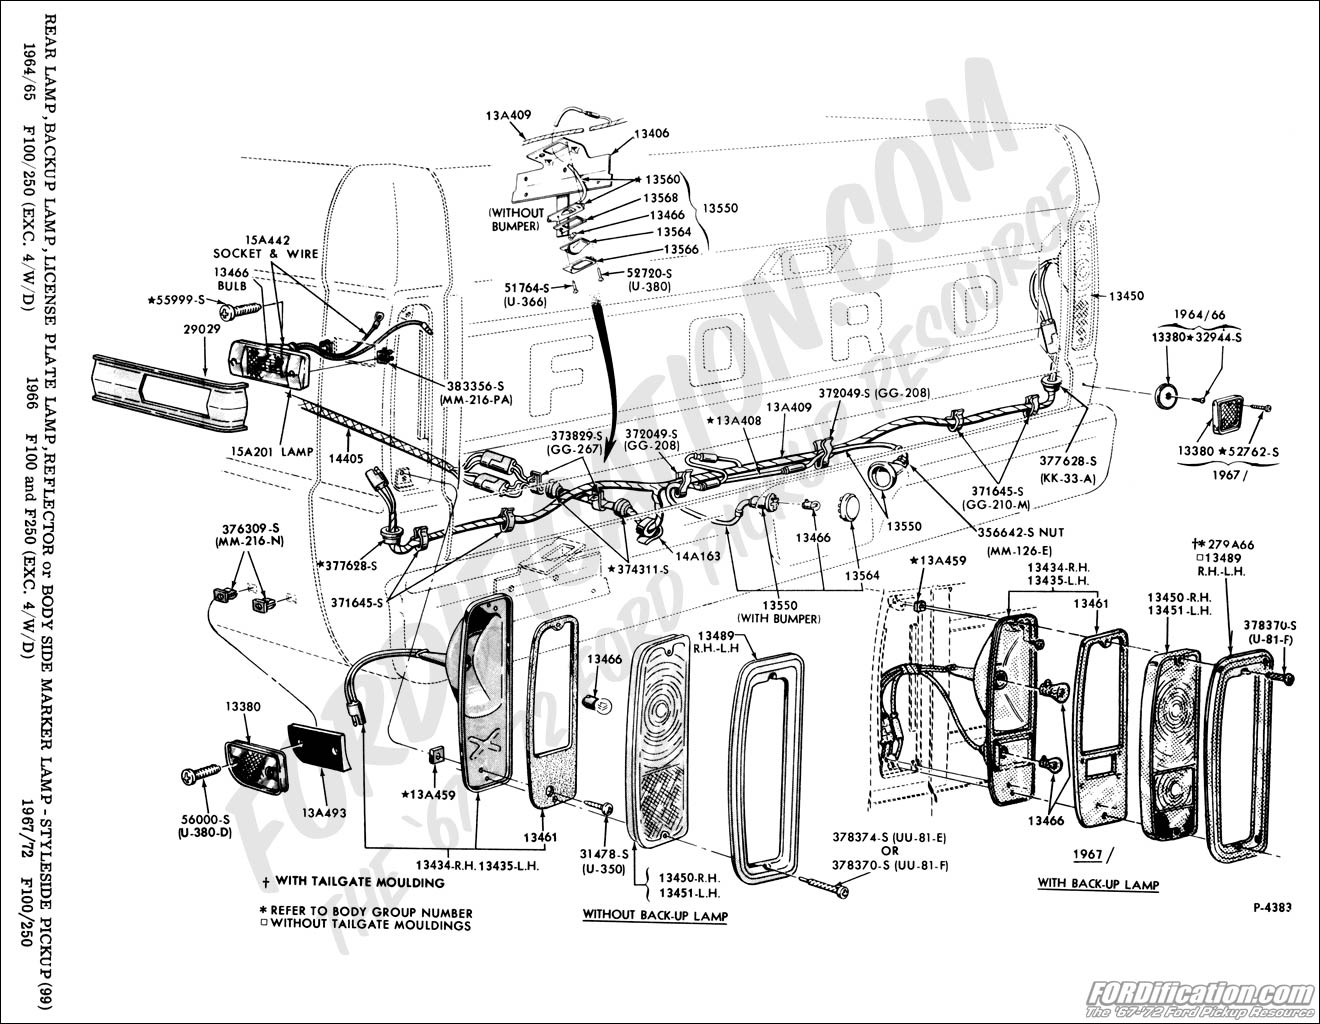 1964 ford f100 tail light wiring diagram  ford  auto parts